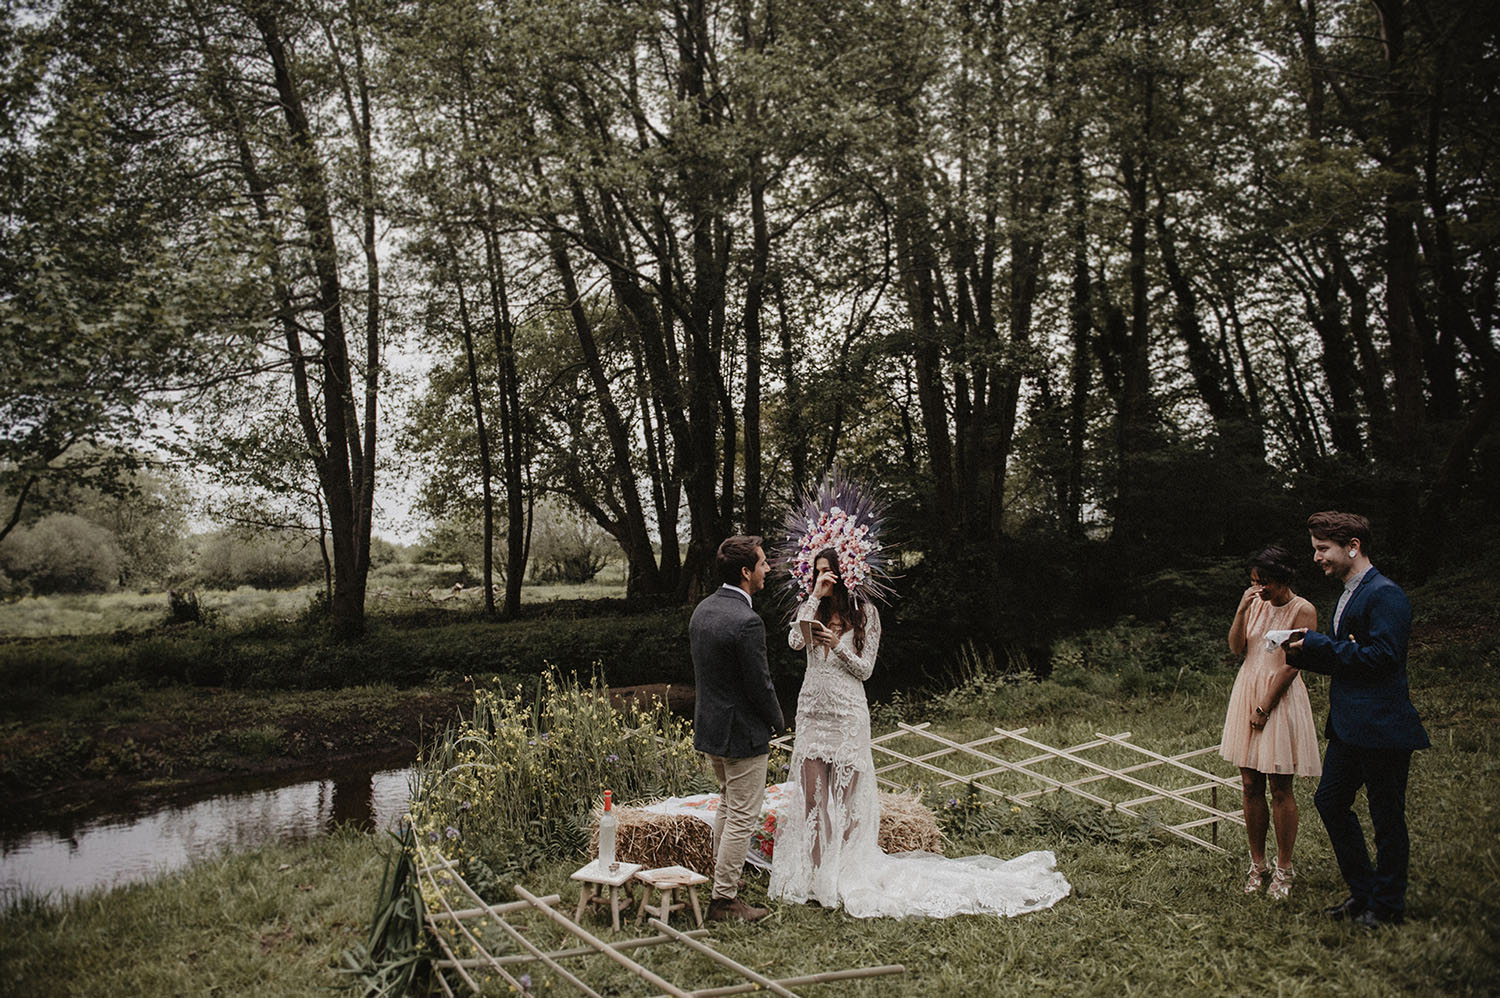 Outdoor ceremony at Coco Barn Wood Lodge in southwest of France